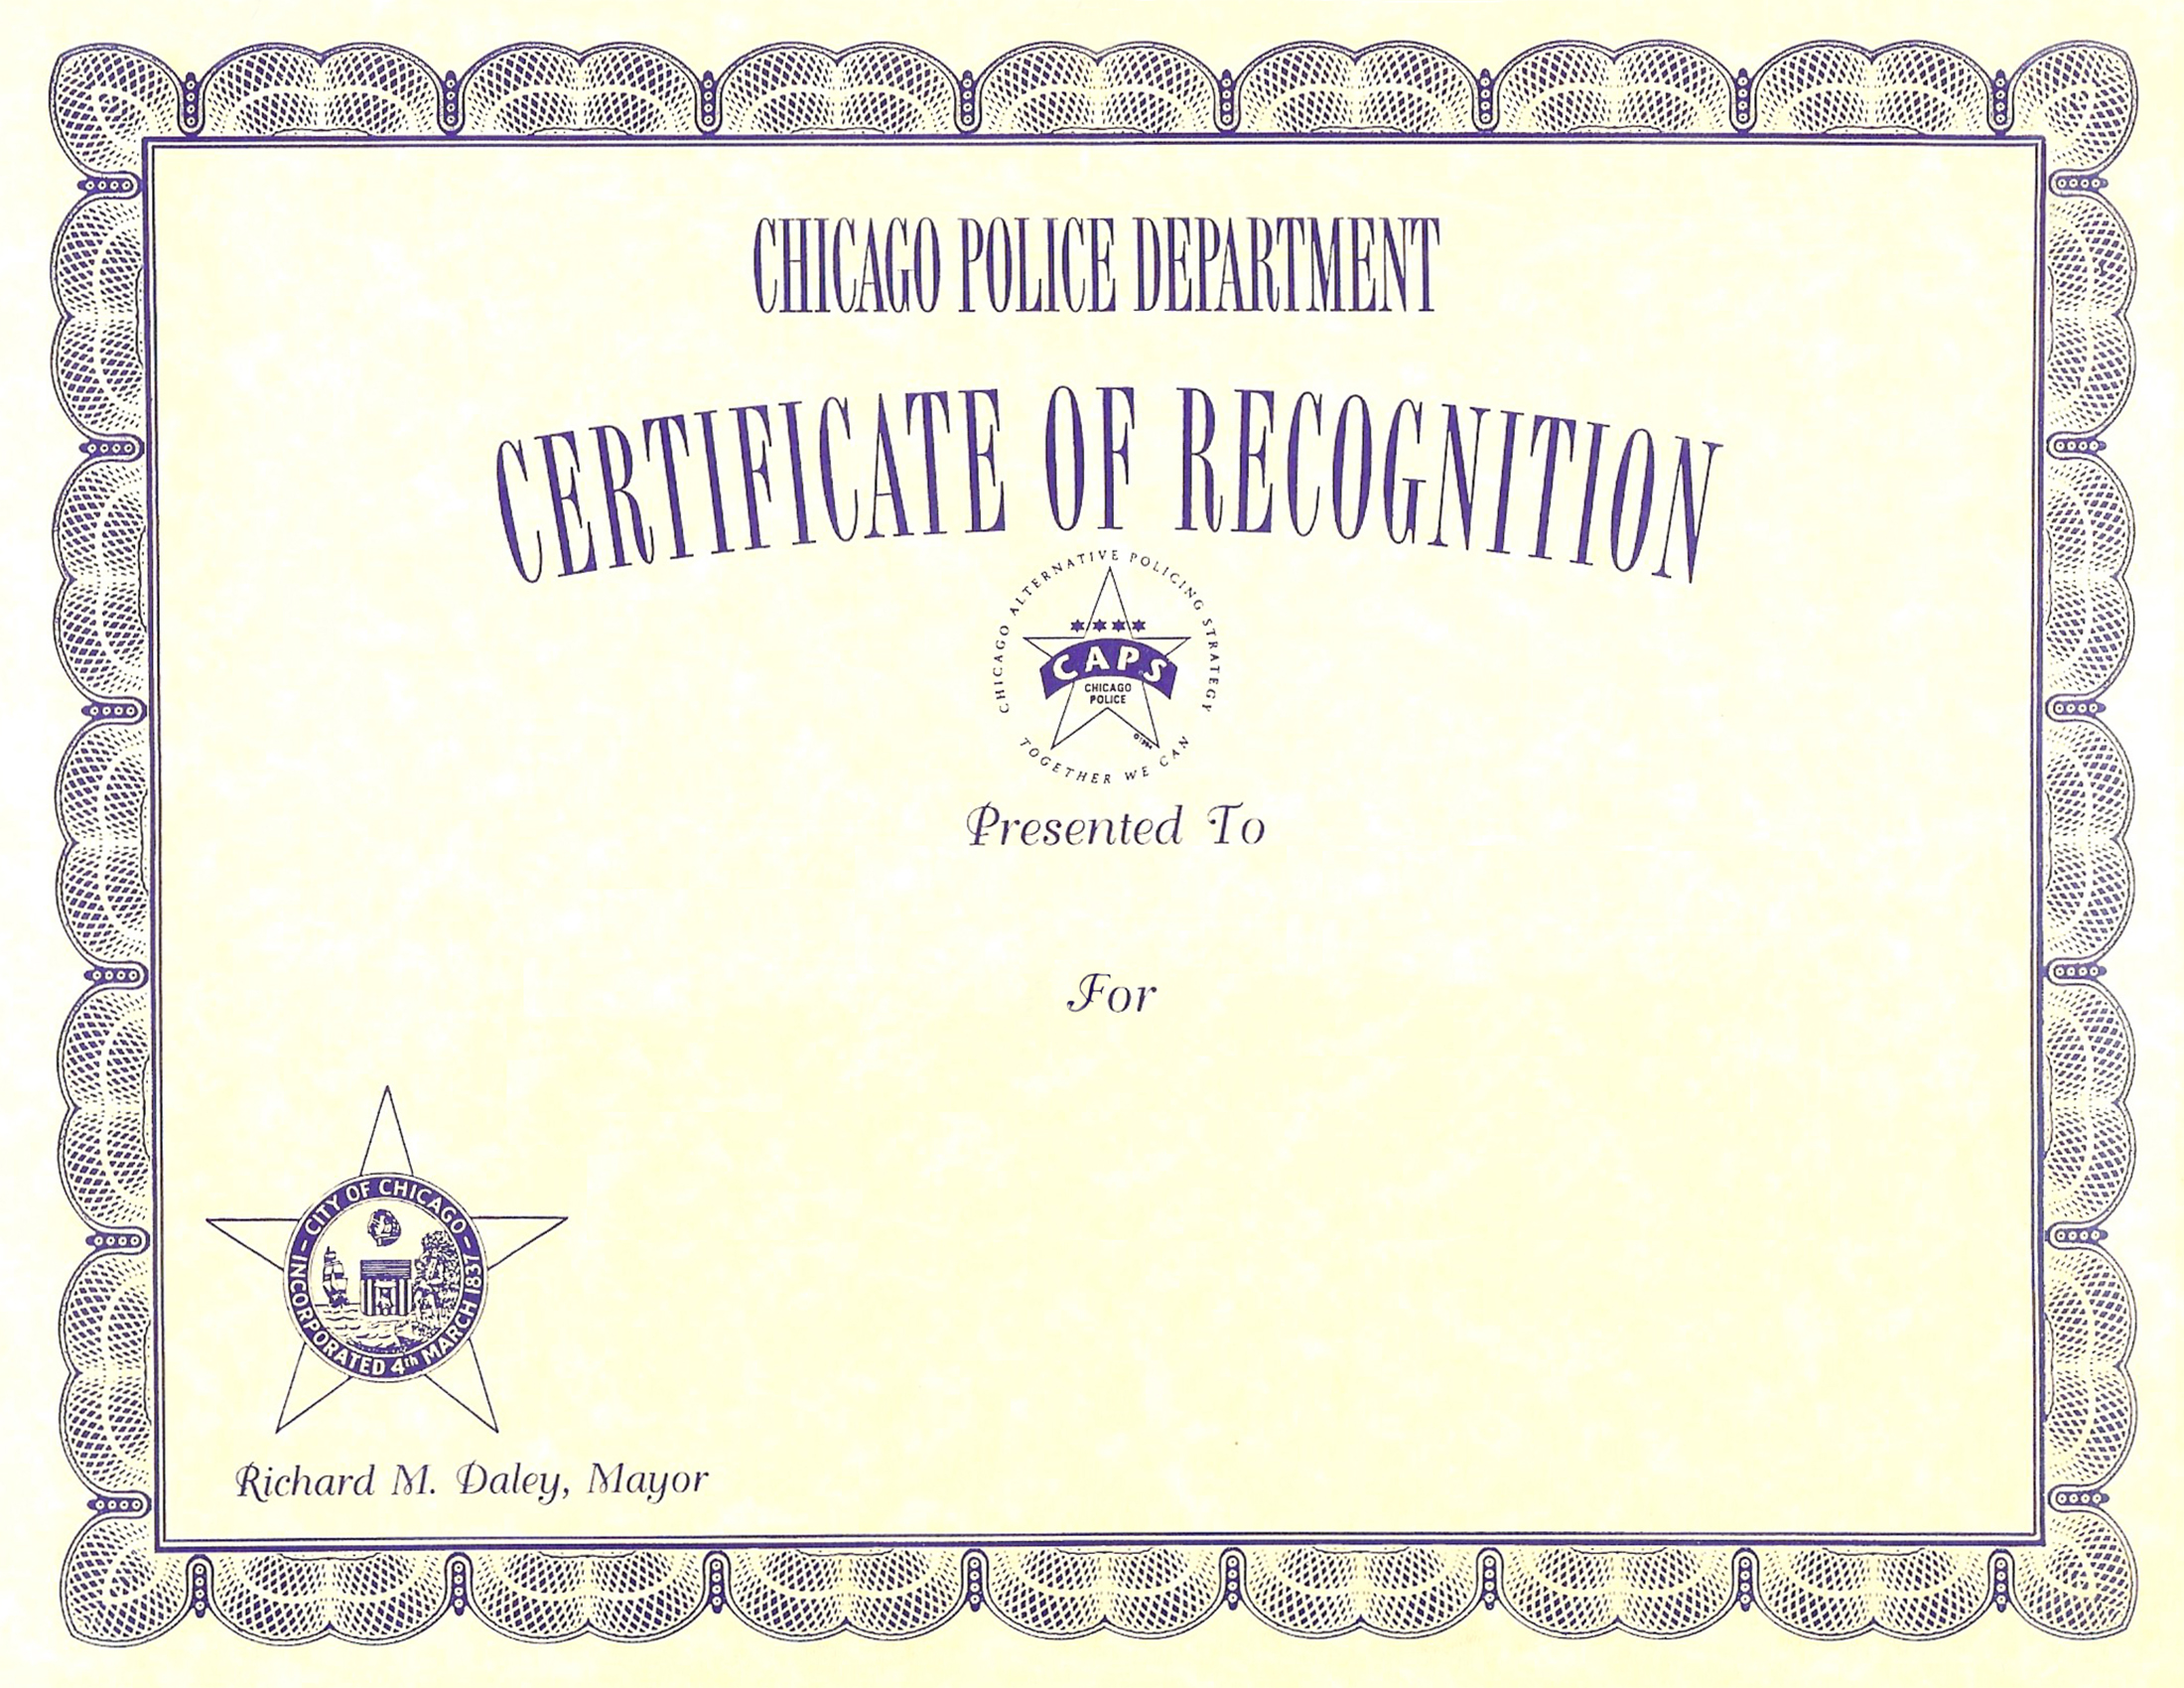 Certificate of Recognition Certificate - 1989 Series